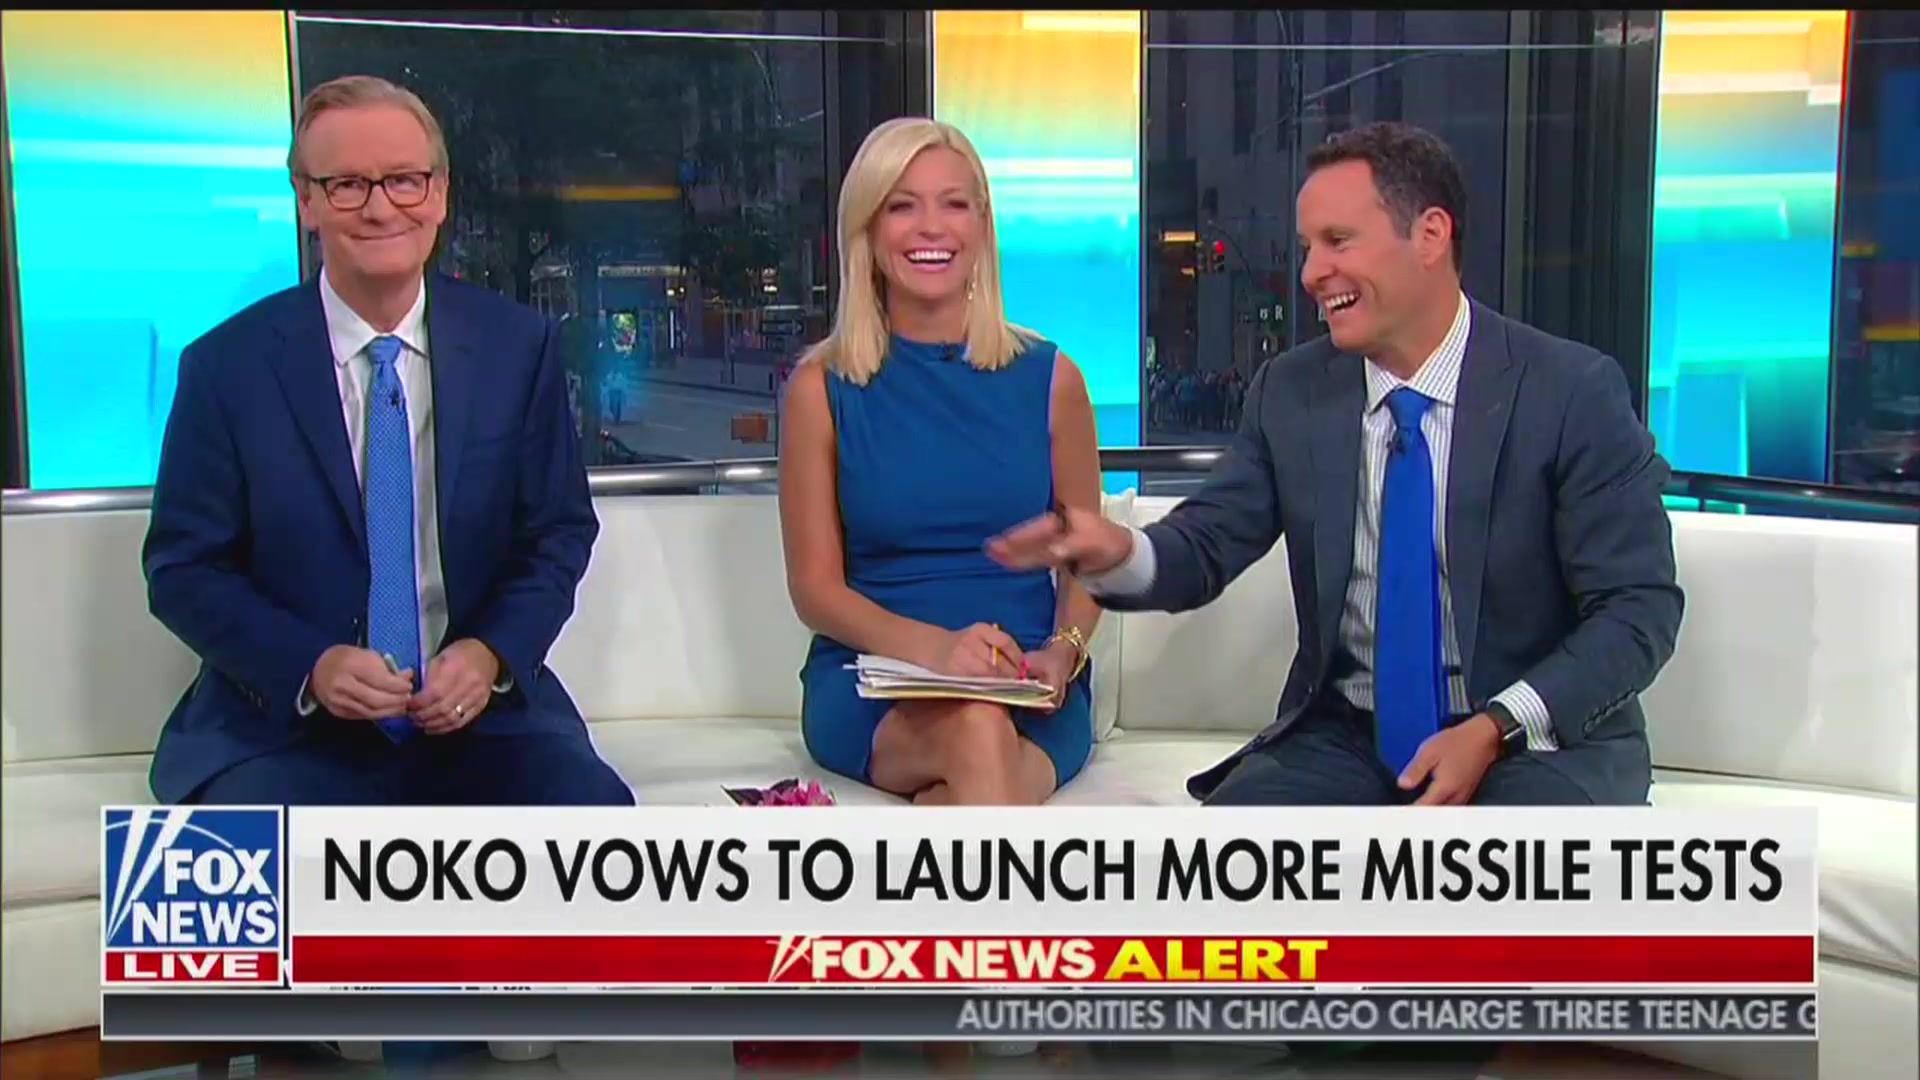 Fox & Friends' Brian Kilmeade Says Trump Has 'Policy of Underreacting,' Causing Co-Hosts to Laugh